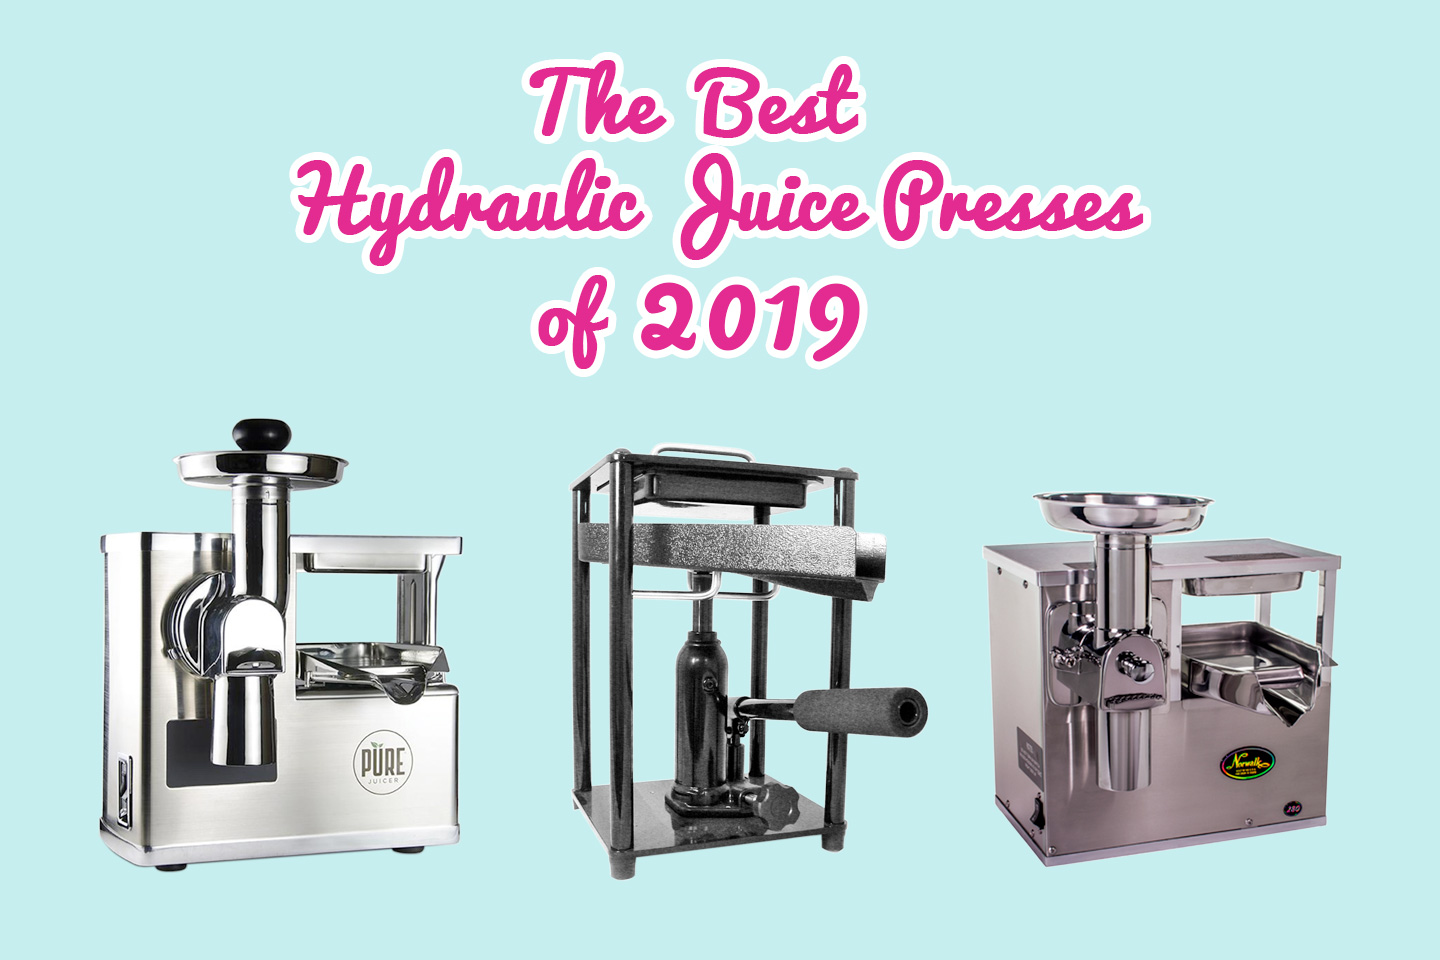 The Best Hydraulic Juice Press of 2019 | Hearty Blends